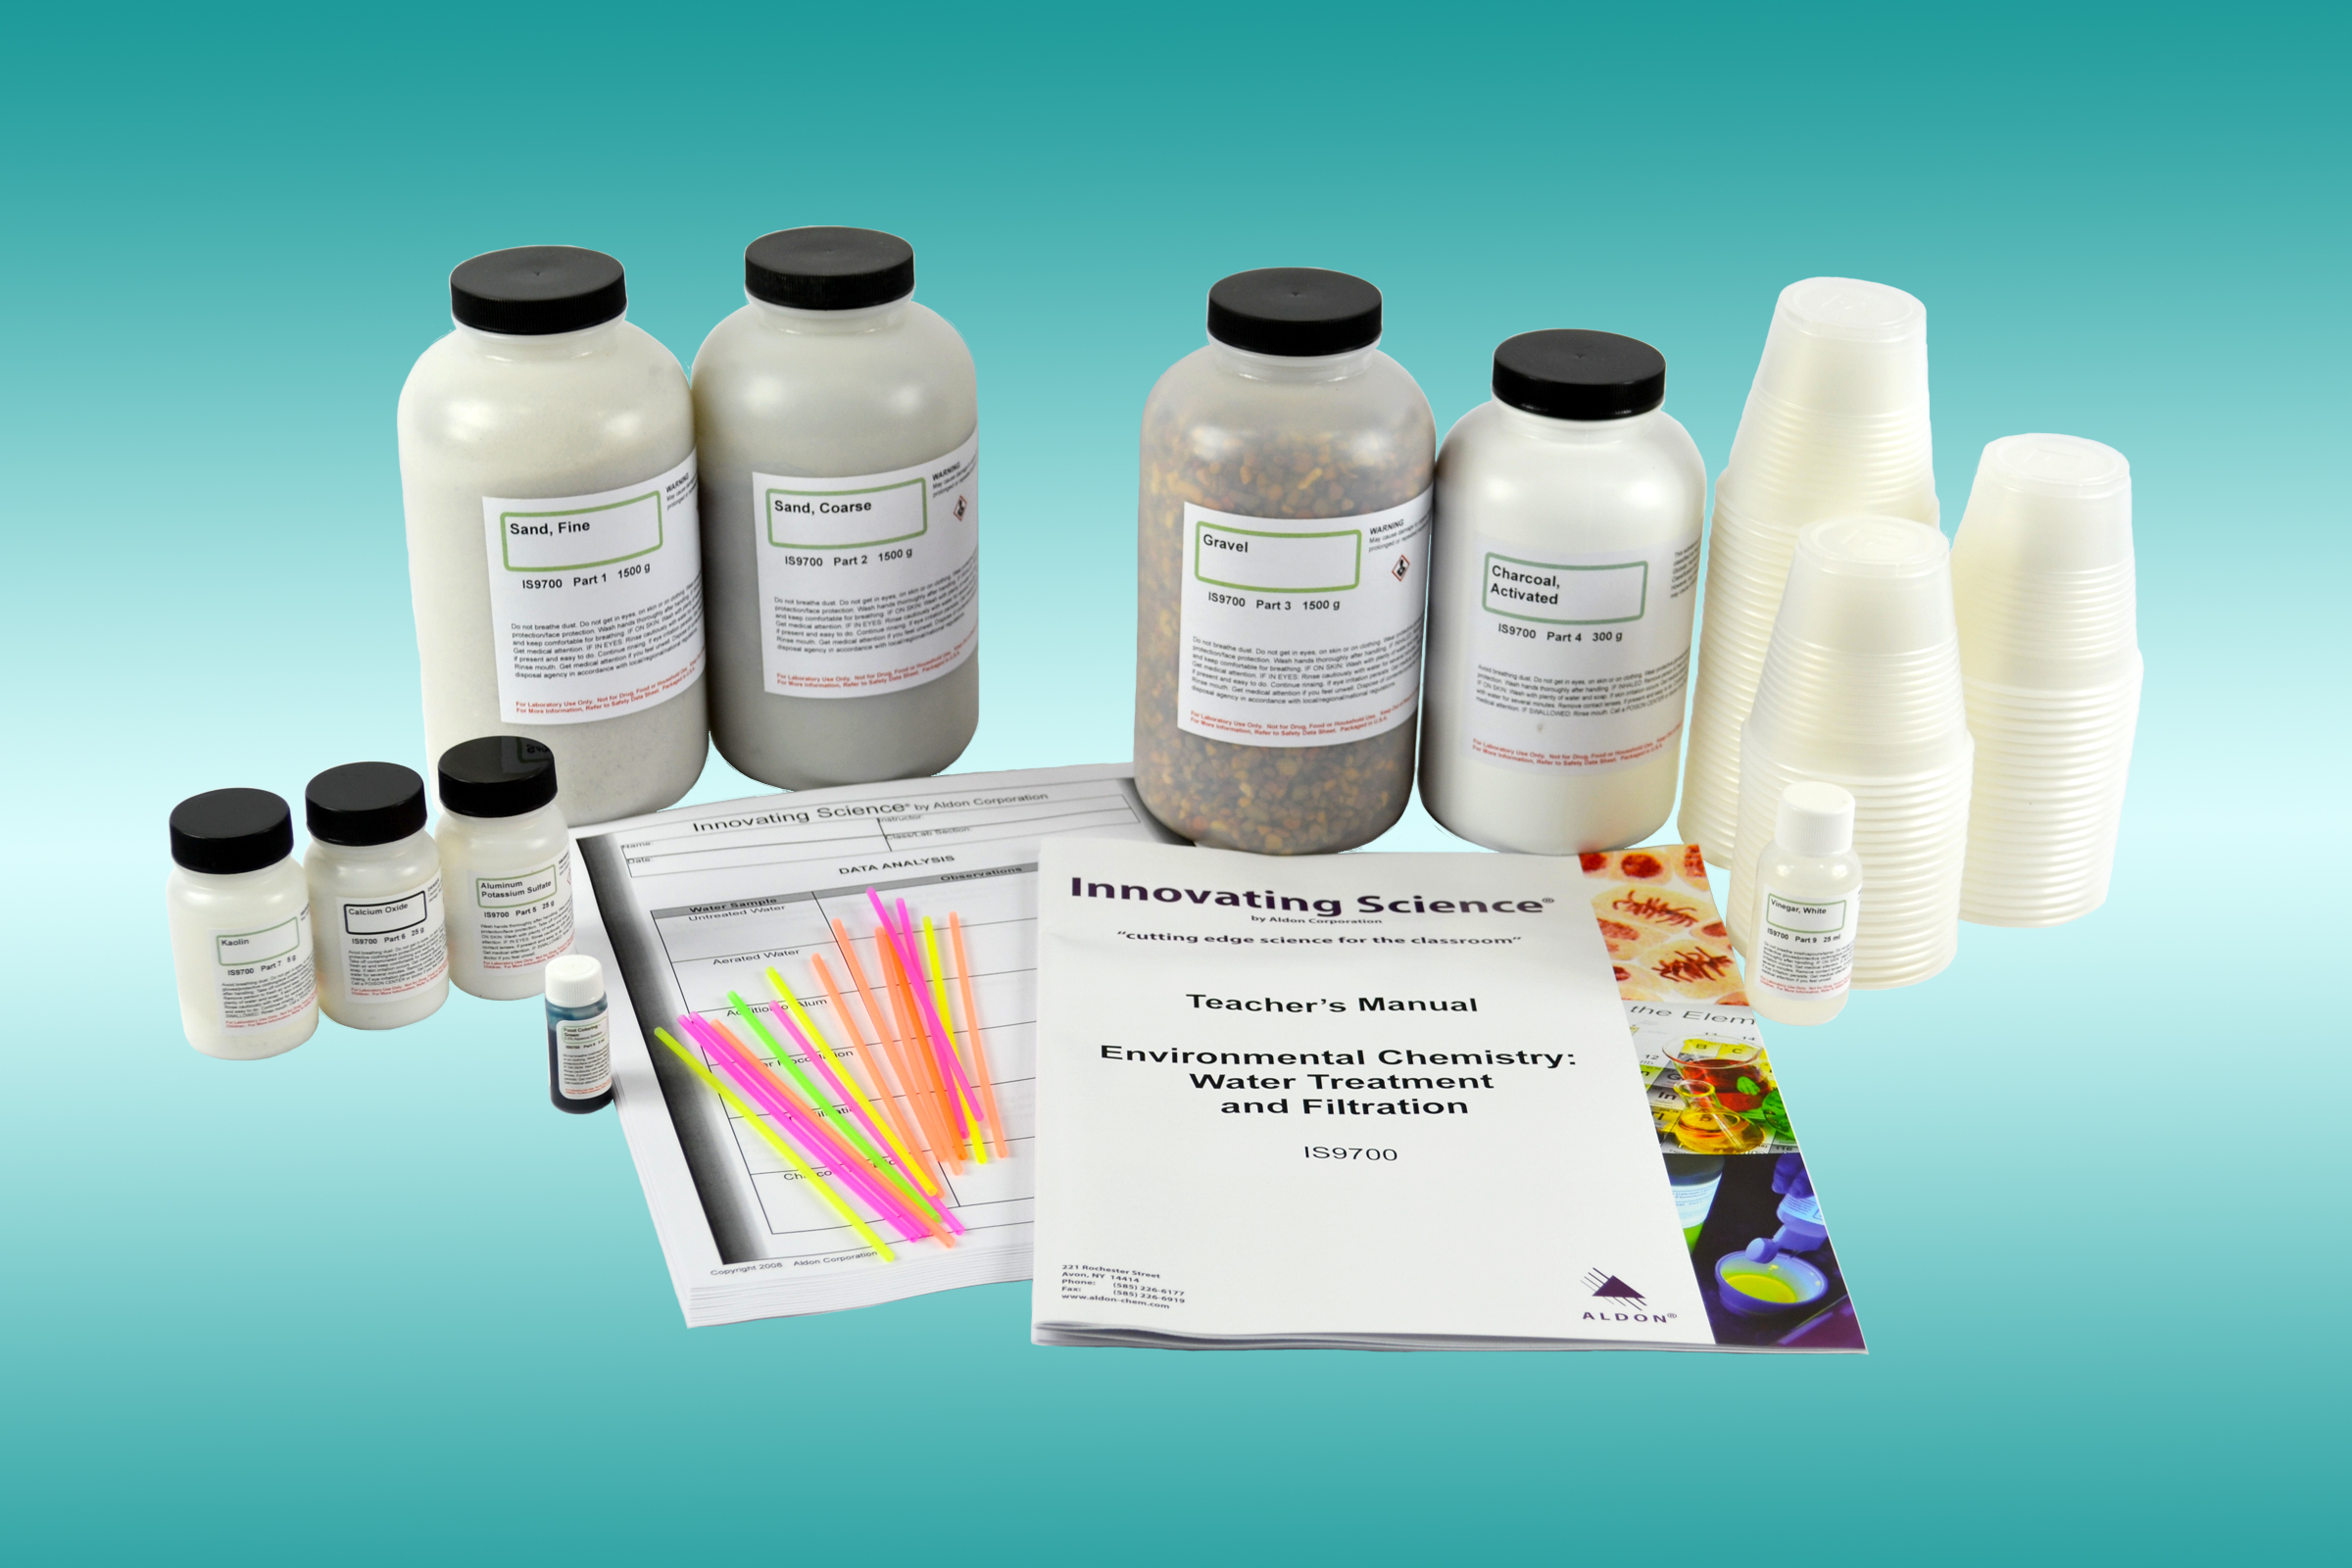 IS9700 Environmental Chemistry: Water Treatment and Filtration